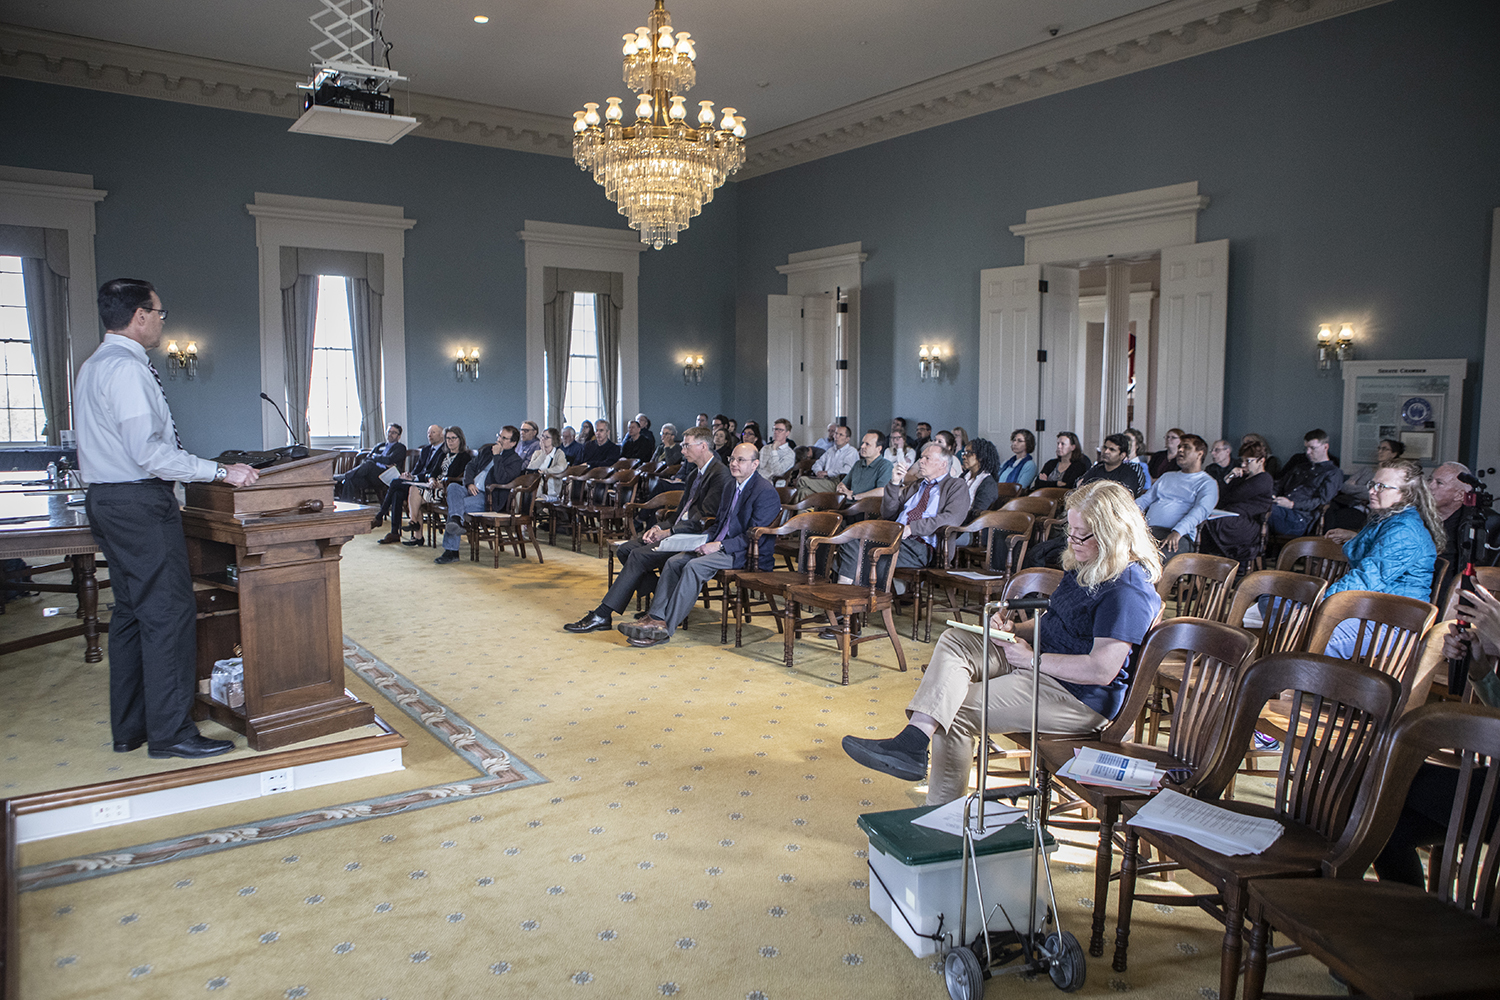 Associate Vice President for Enrollment Management Brent Gage speaks during the Senate Faculty meeting on Tuesday, April 23, 2019.